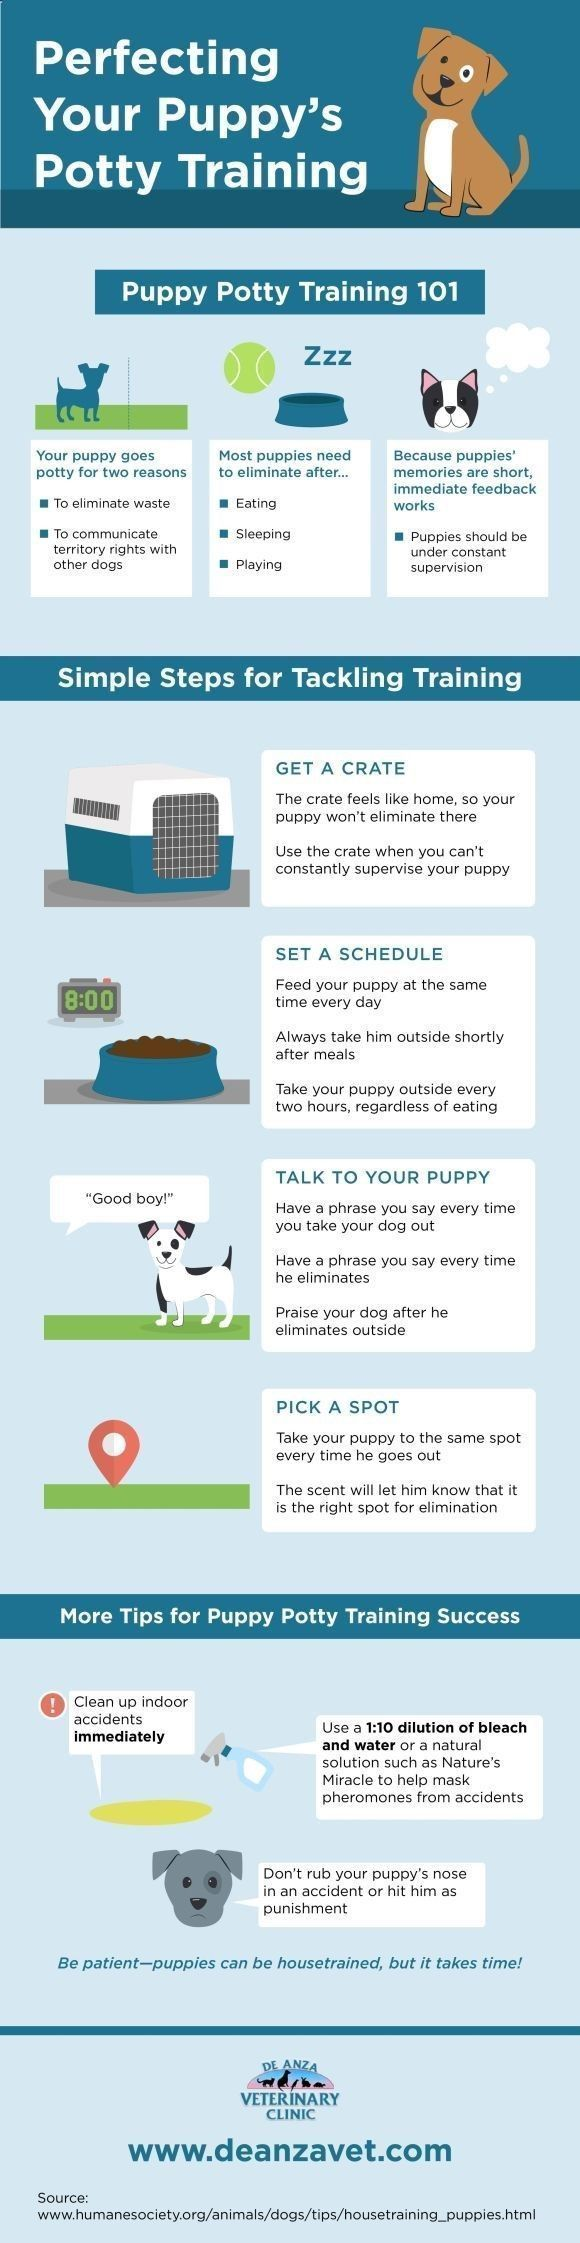 Pet Training - Do you know how to potty train your puppy? Start by setting a feeding schedule! Click over to this San Jose animal hospital infographic to get more tips that will help you potty train your furry friend.: This article help us to teach our dogs to bite just exactly the things that he needs to bite #puppypottytrainingschedule #puppytrainingbiting #puppytrainingschedule